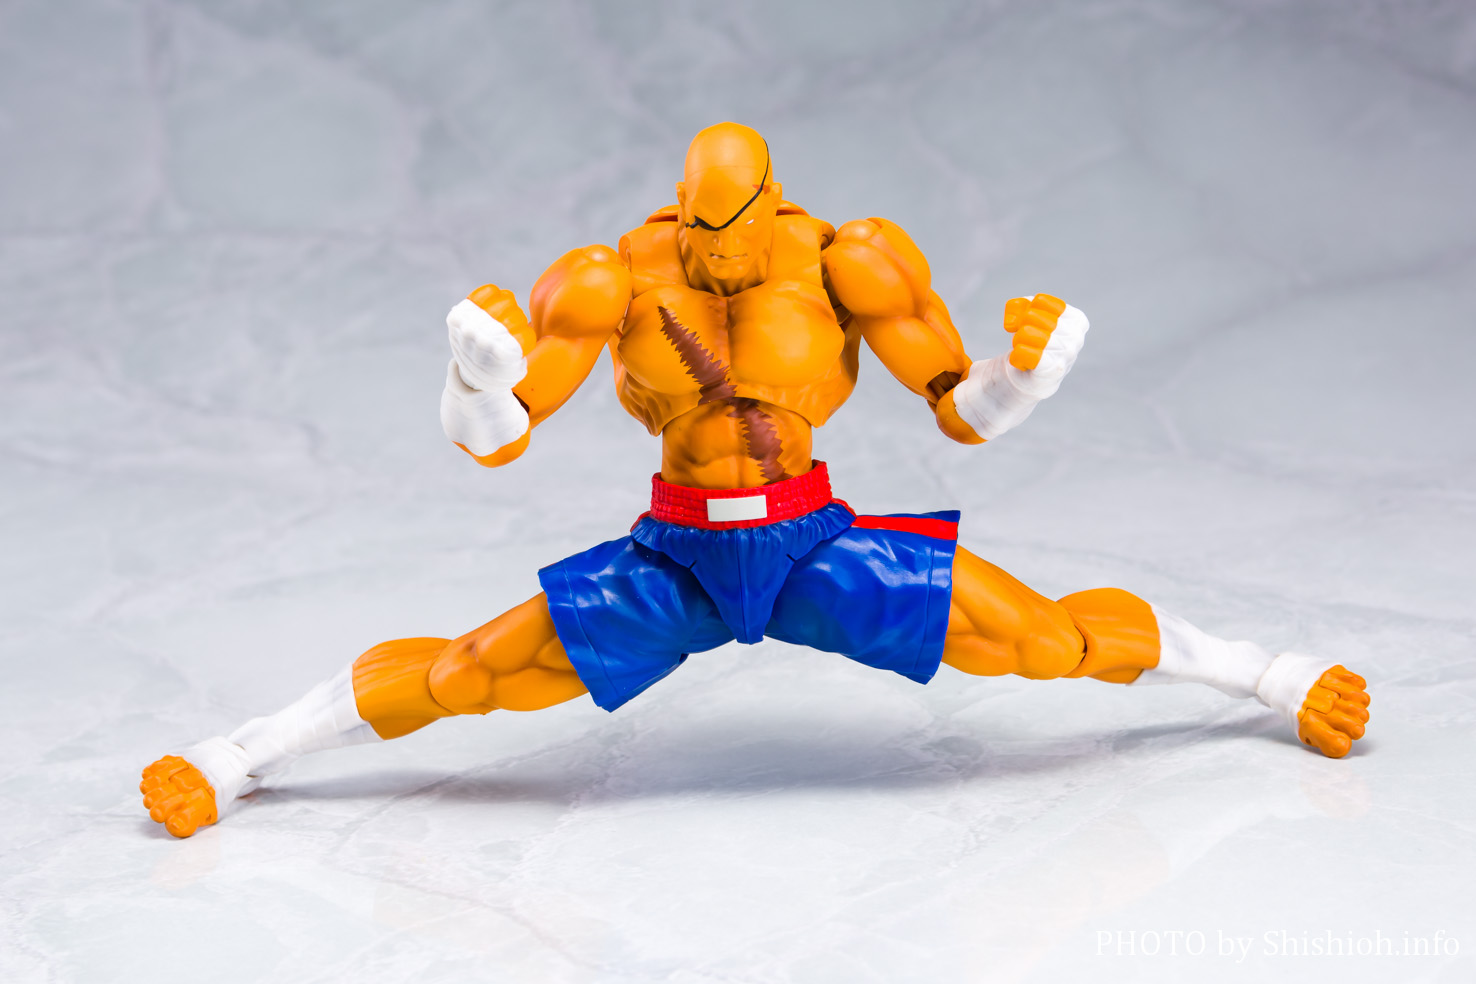 S.H.Figuarts サガット